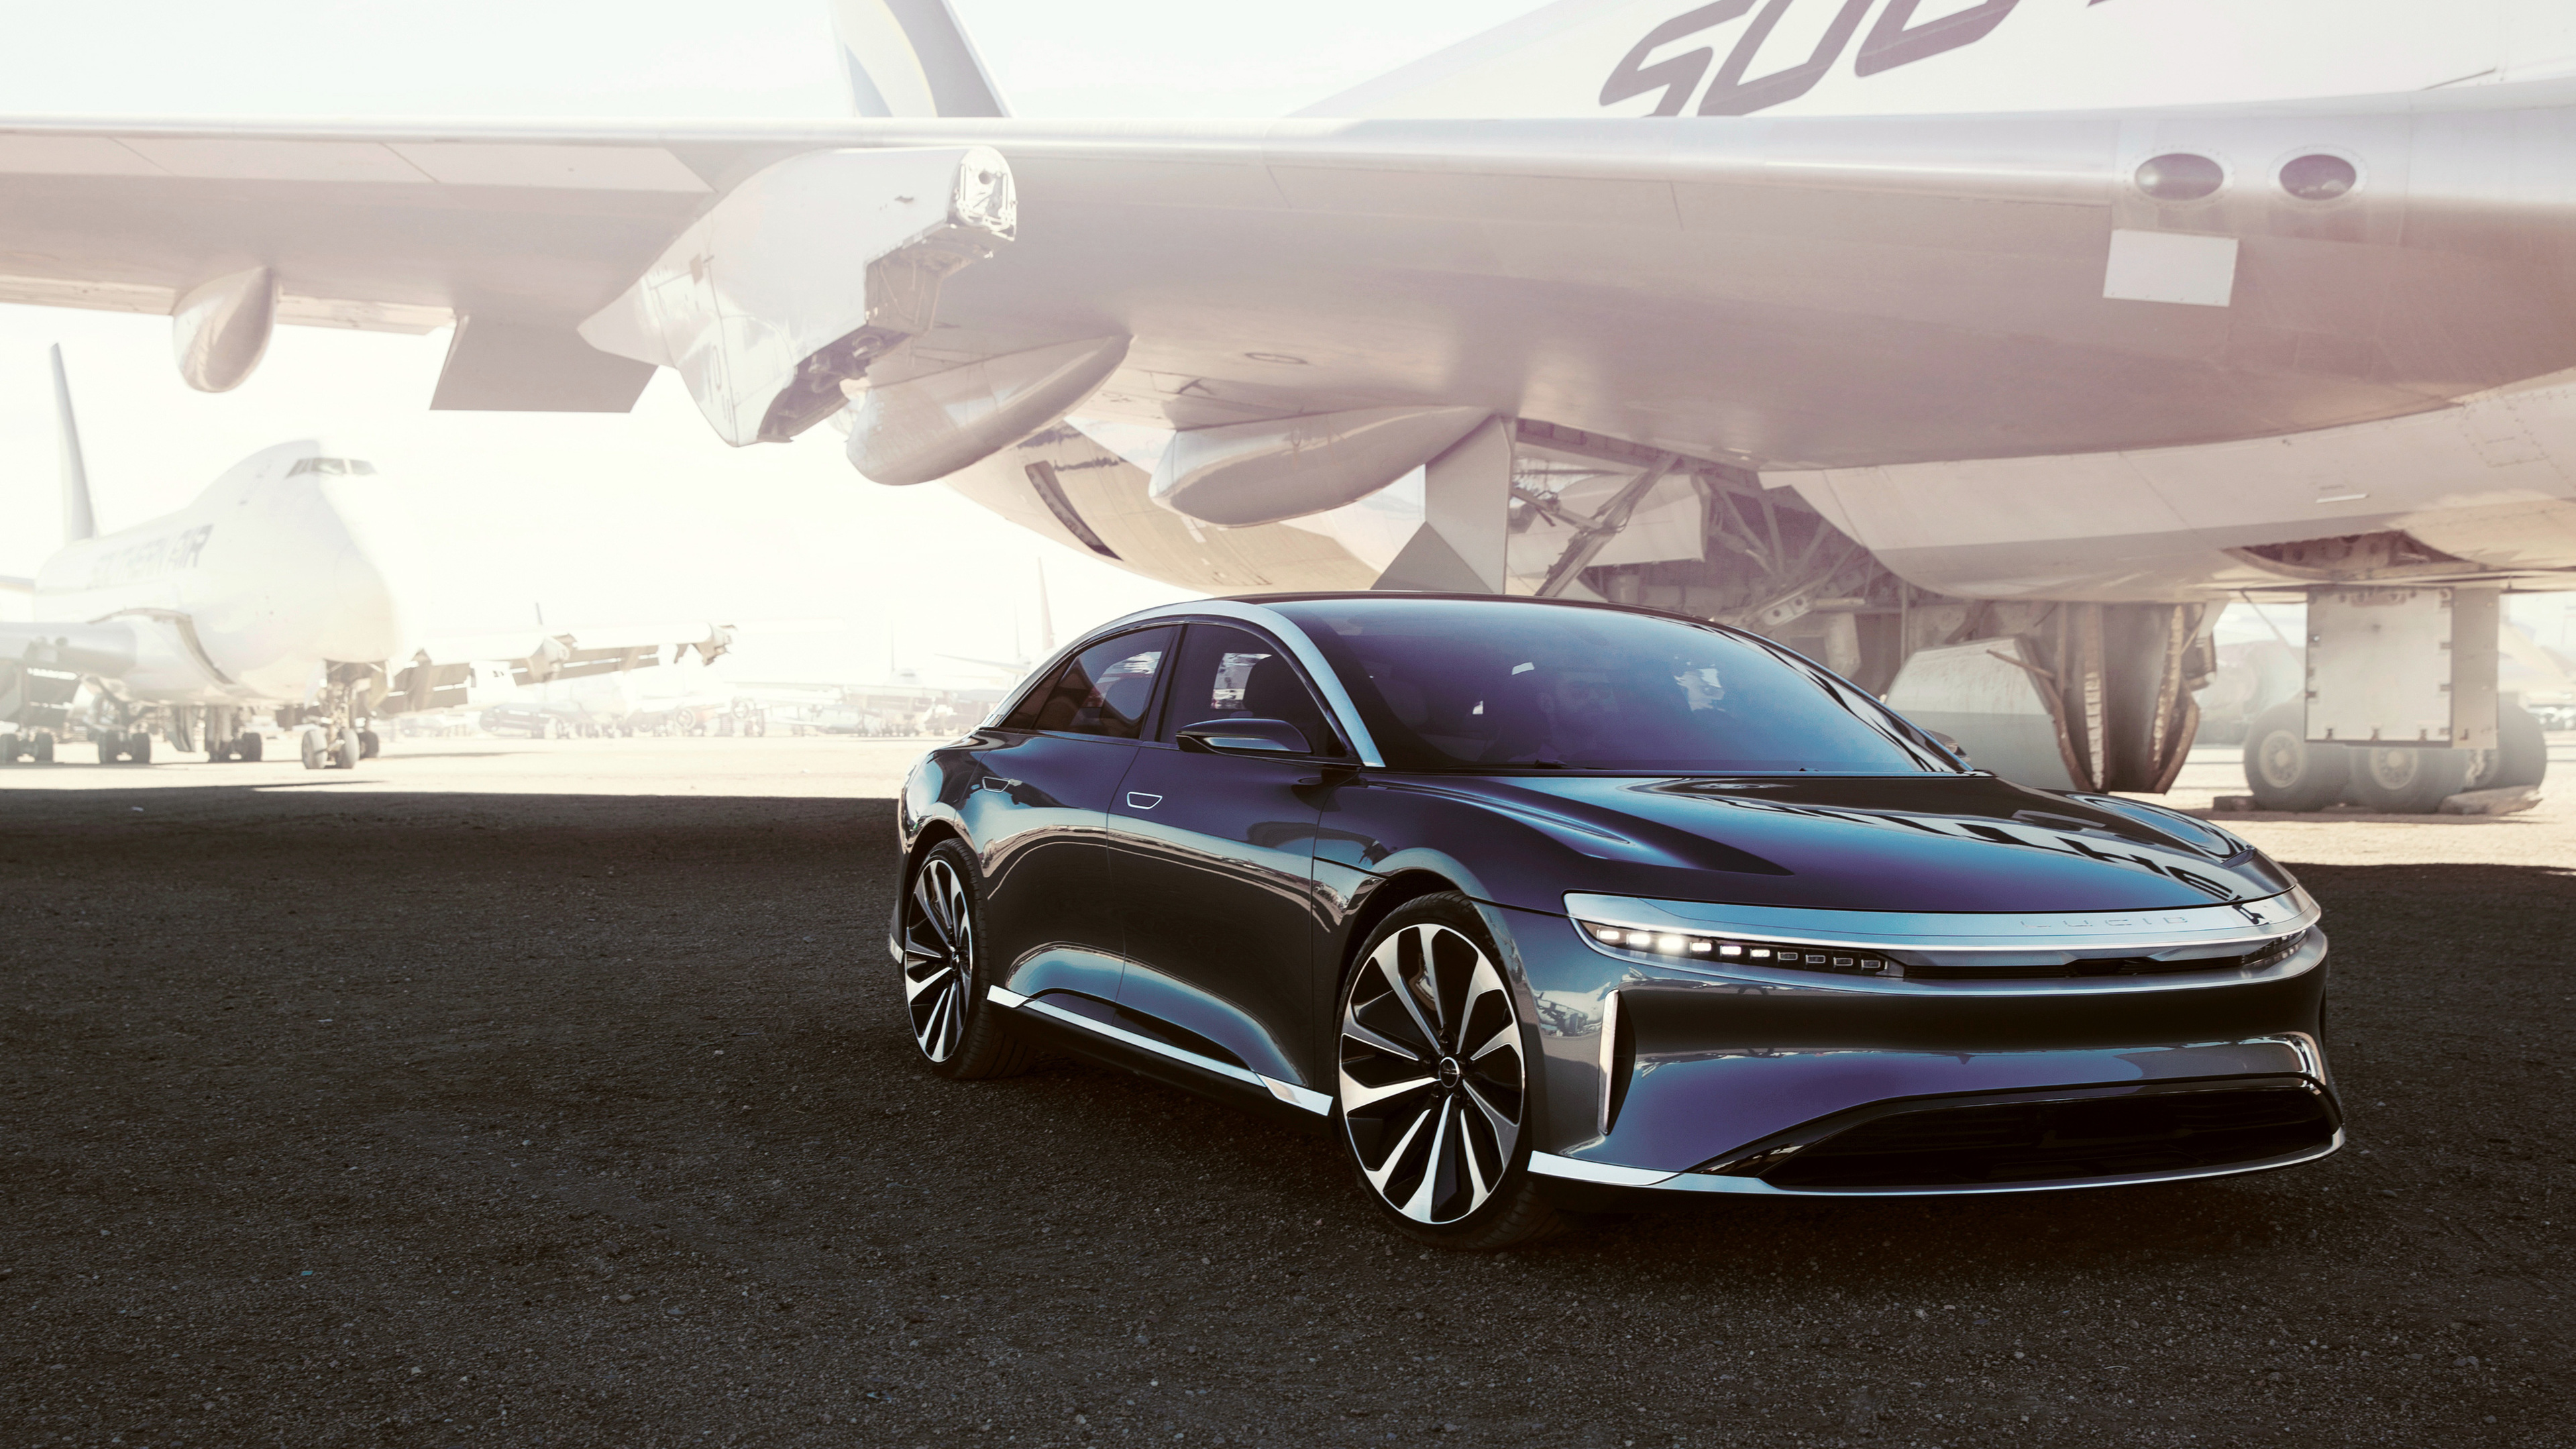 lucid air launch edition prototype 2018 1539792735 - Lucid Air Launch Edition Prototype 2018 - lucid air wallpapers, hd-wallpapers, concept cars wallpapers, cars wallpapers, 4k-wallpapers